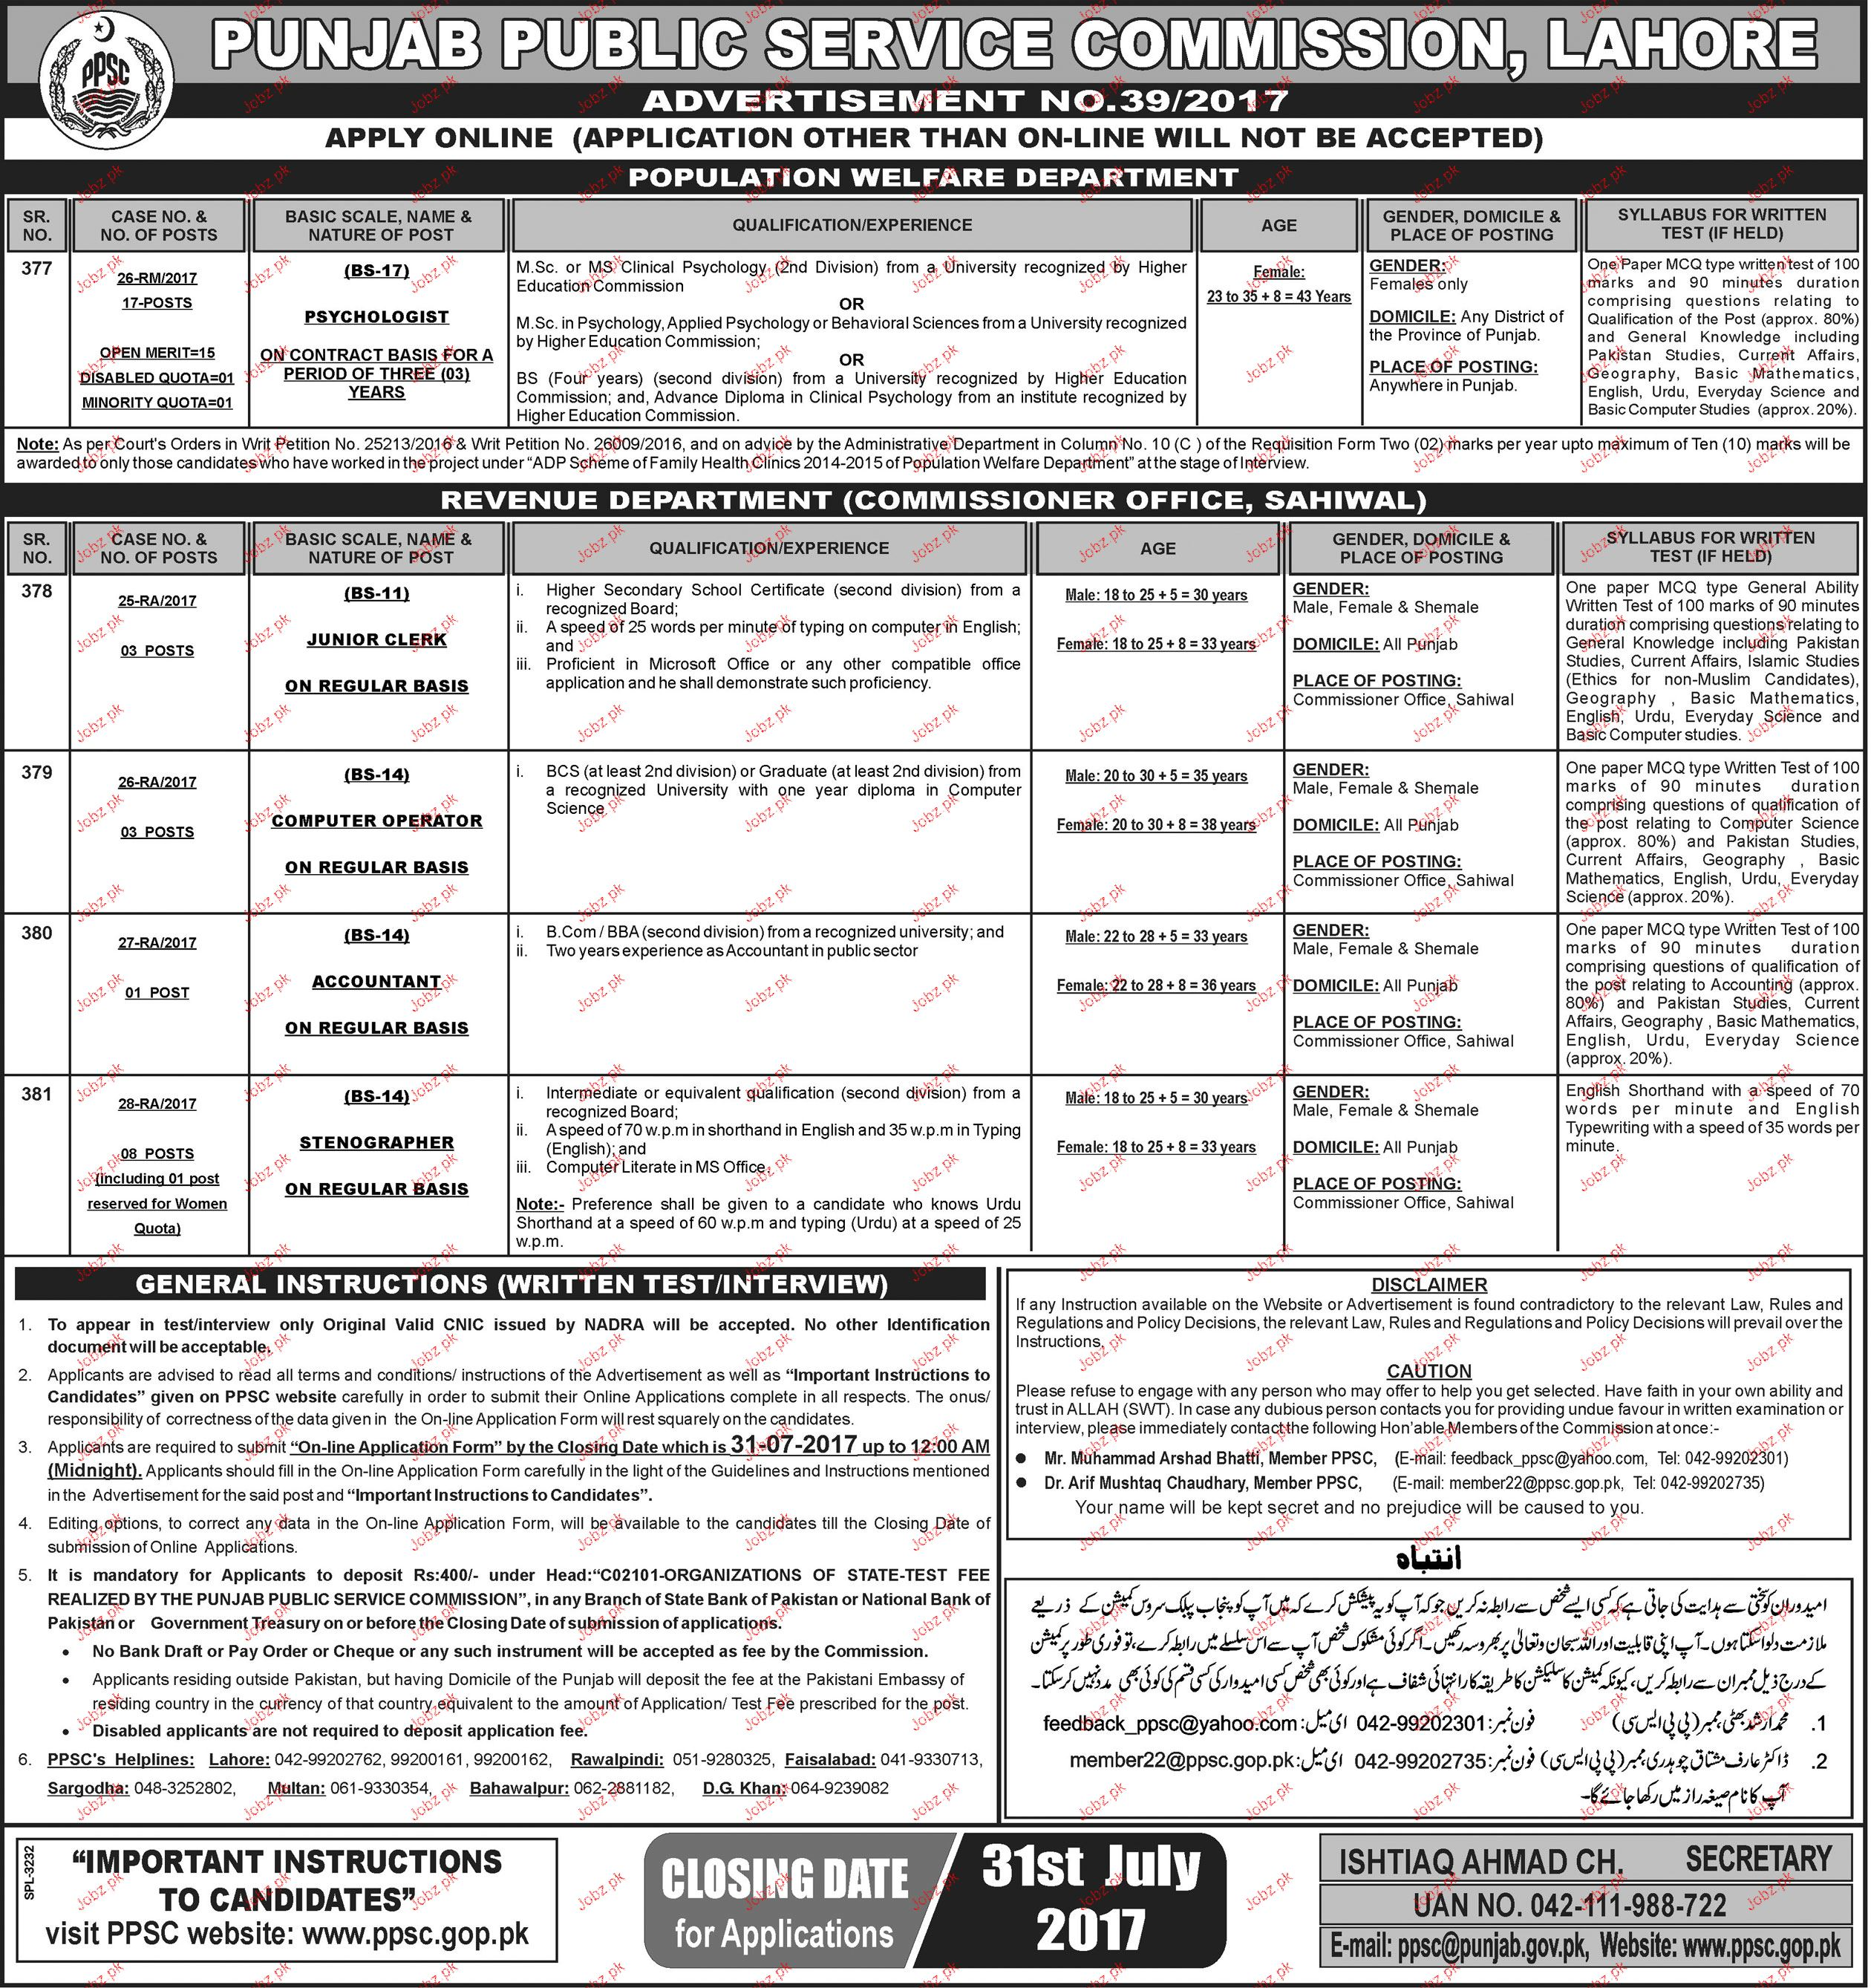 Population Welfare Department PWD Jobs Through PPSC